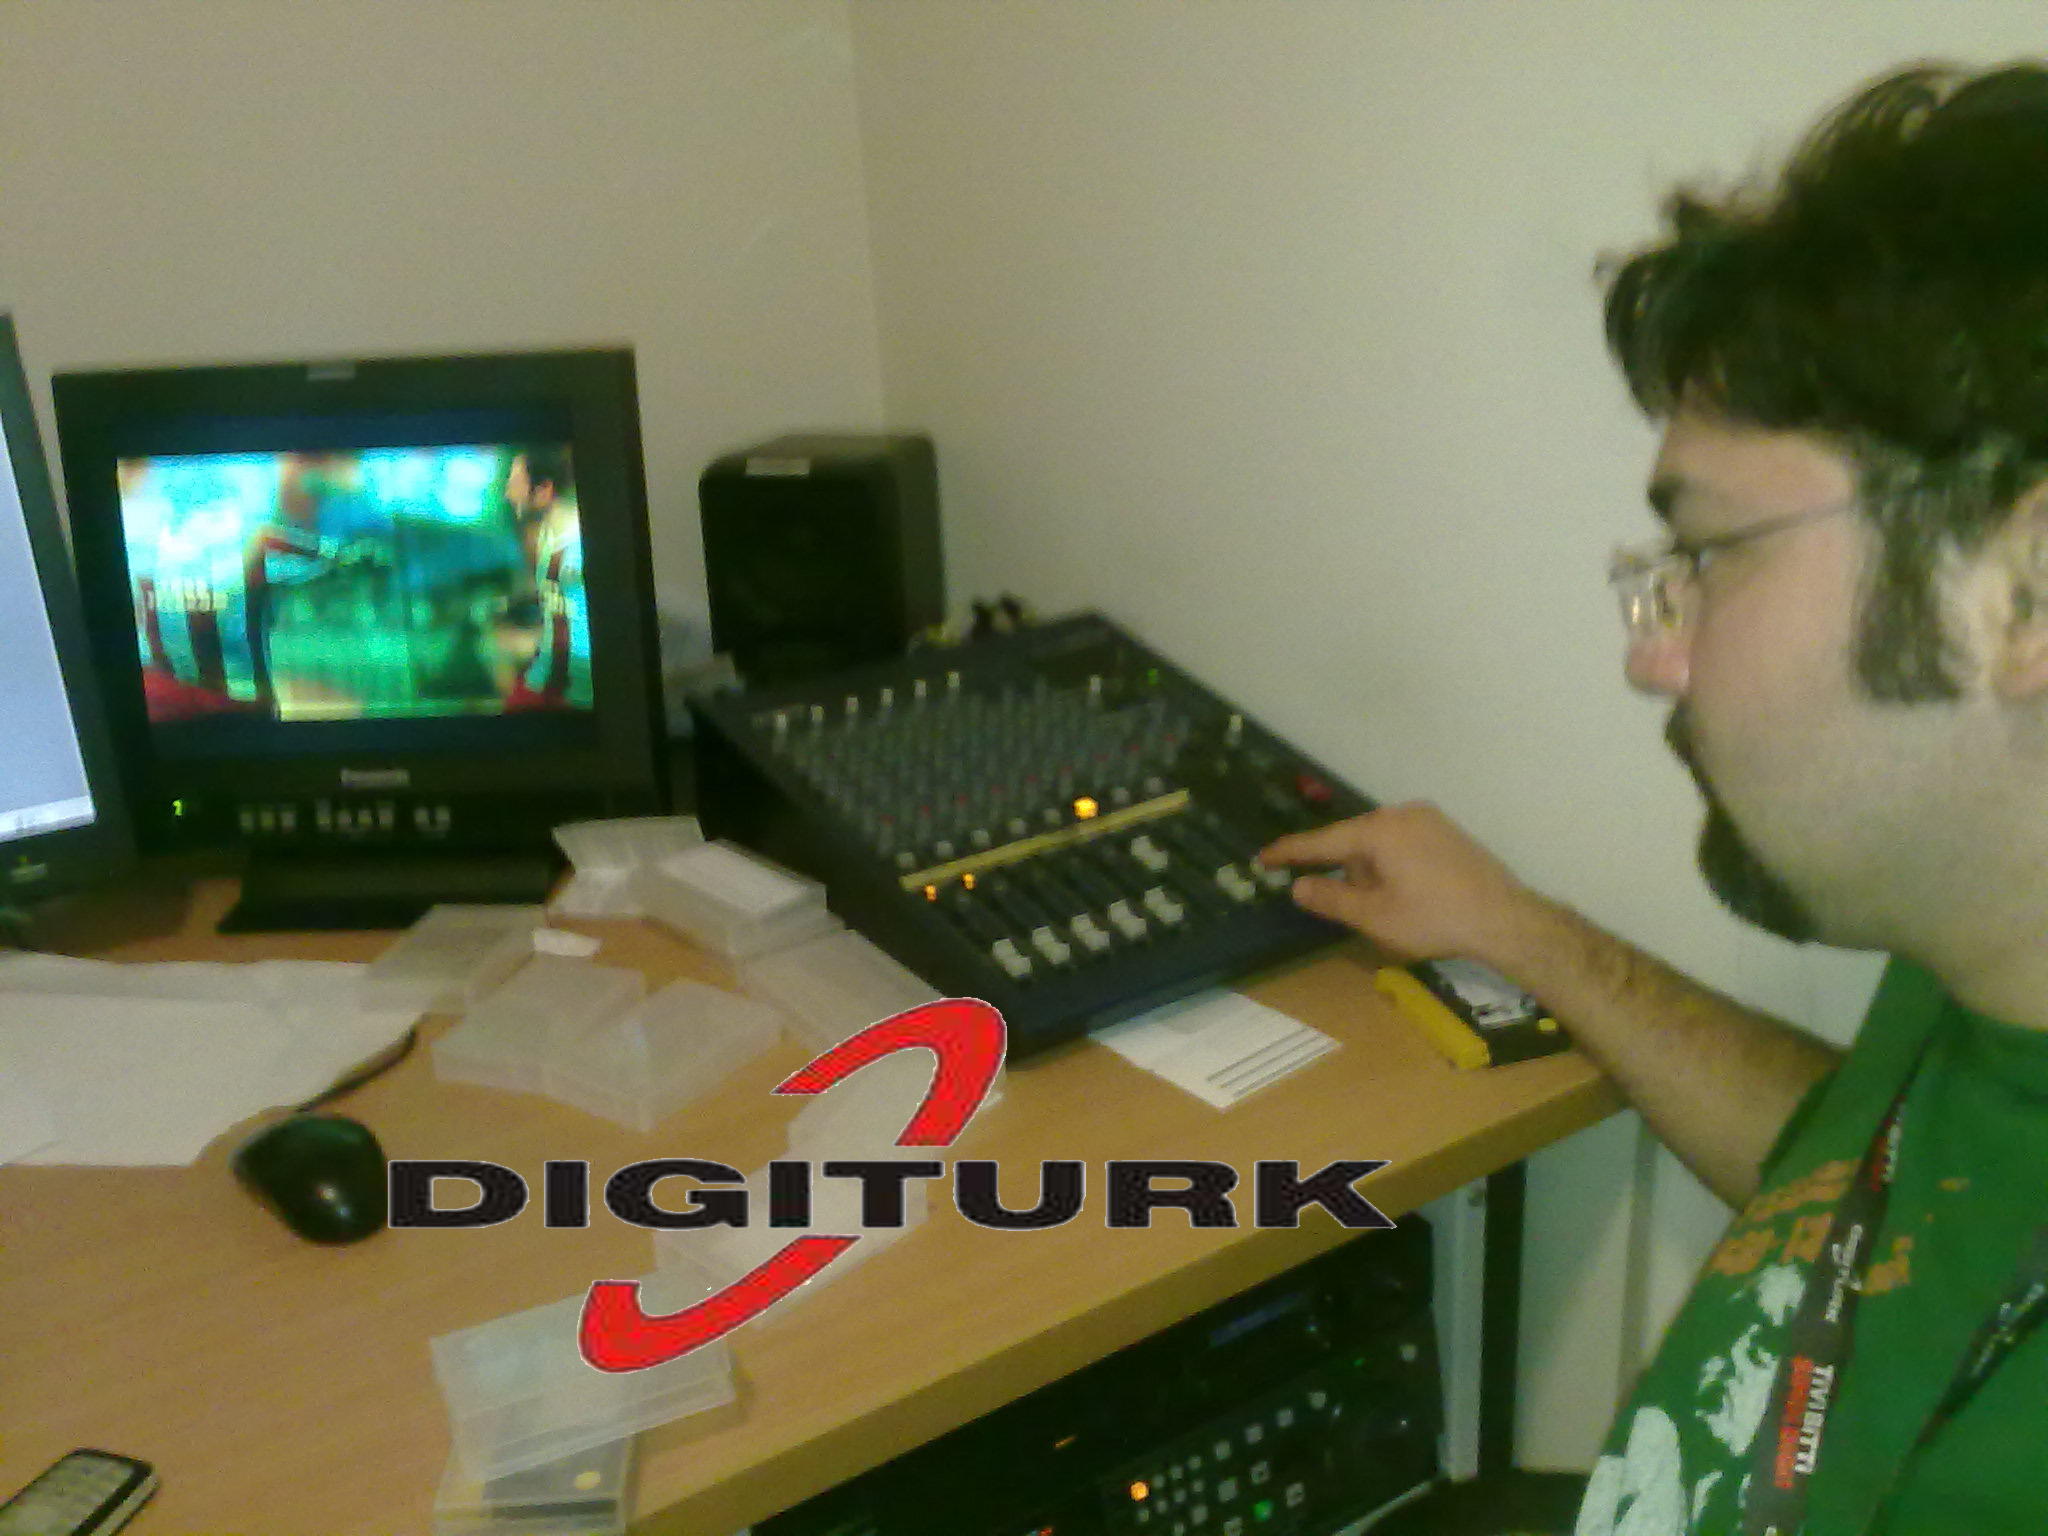 DIGITURK (SPORMAX, LİG TV)